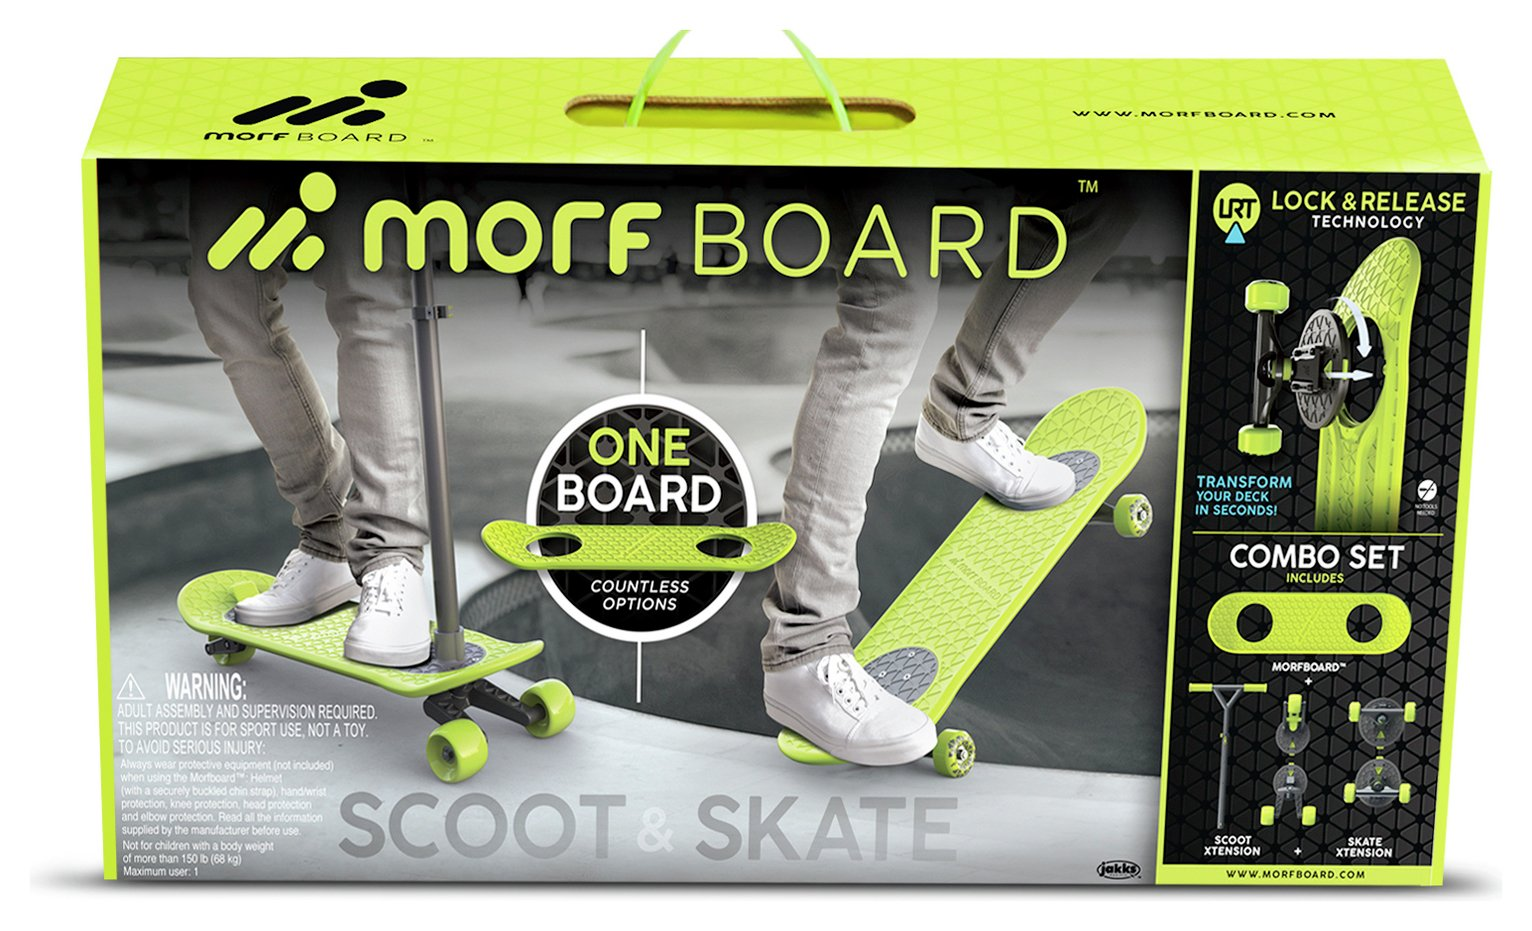 Morfboard Skate and Scoot Combo Set